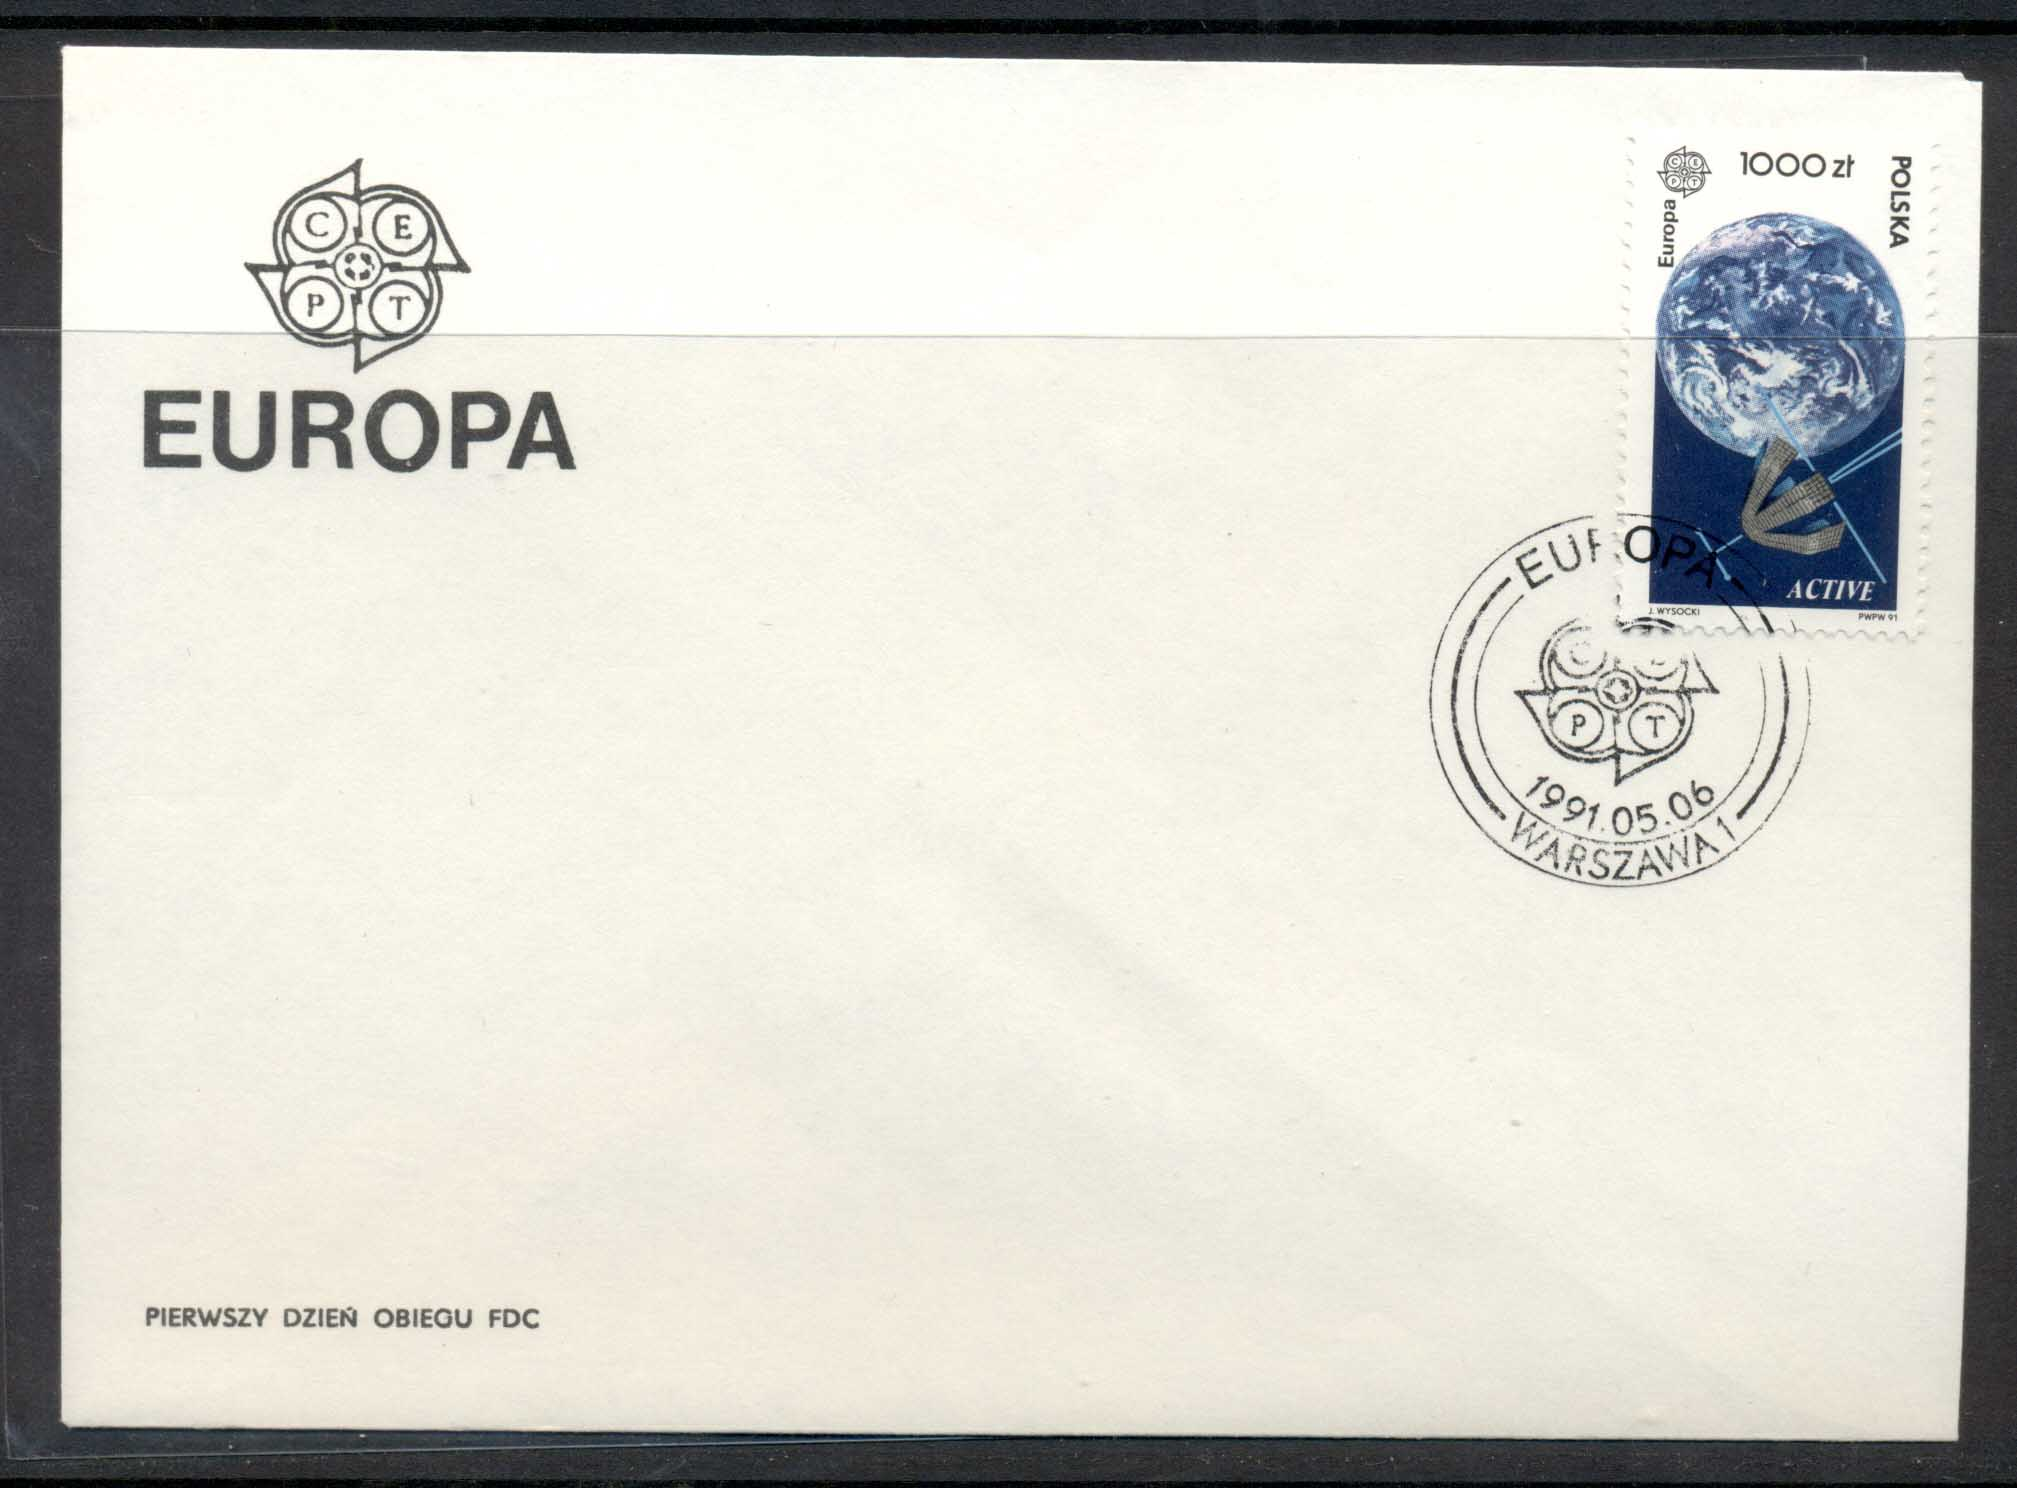 Poland 1991 Europa Man in Space FDC